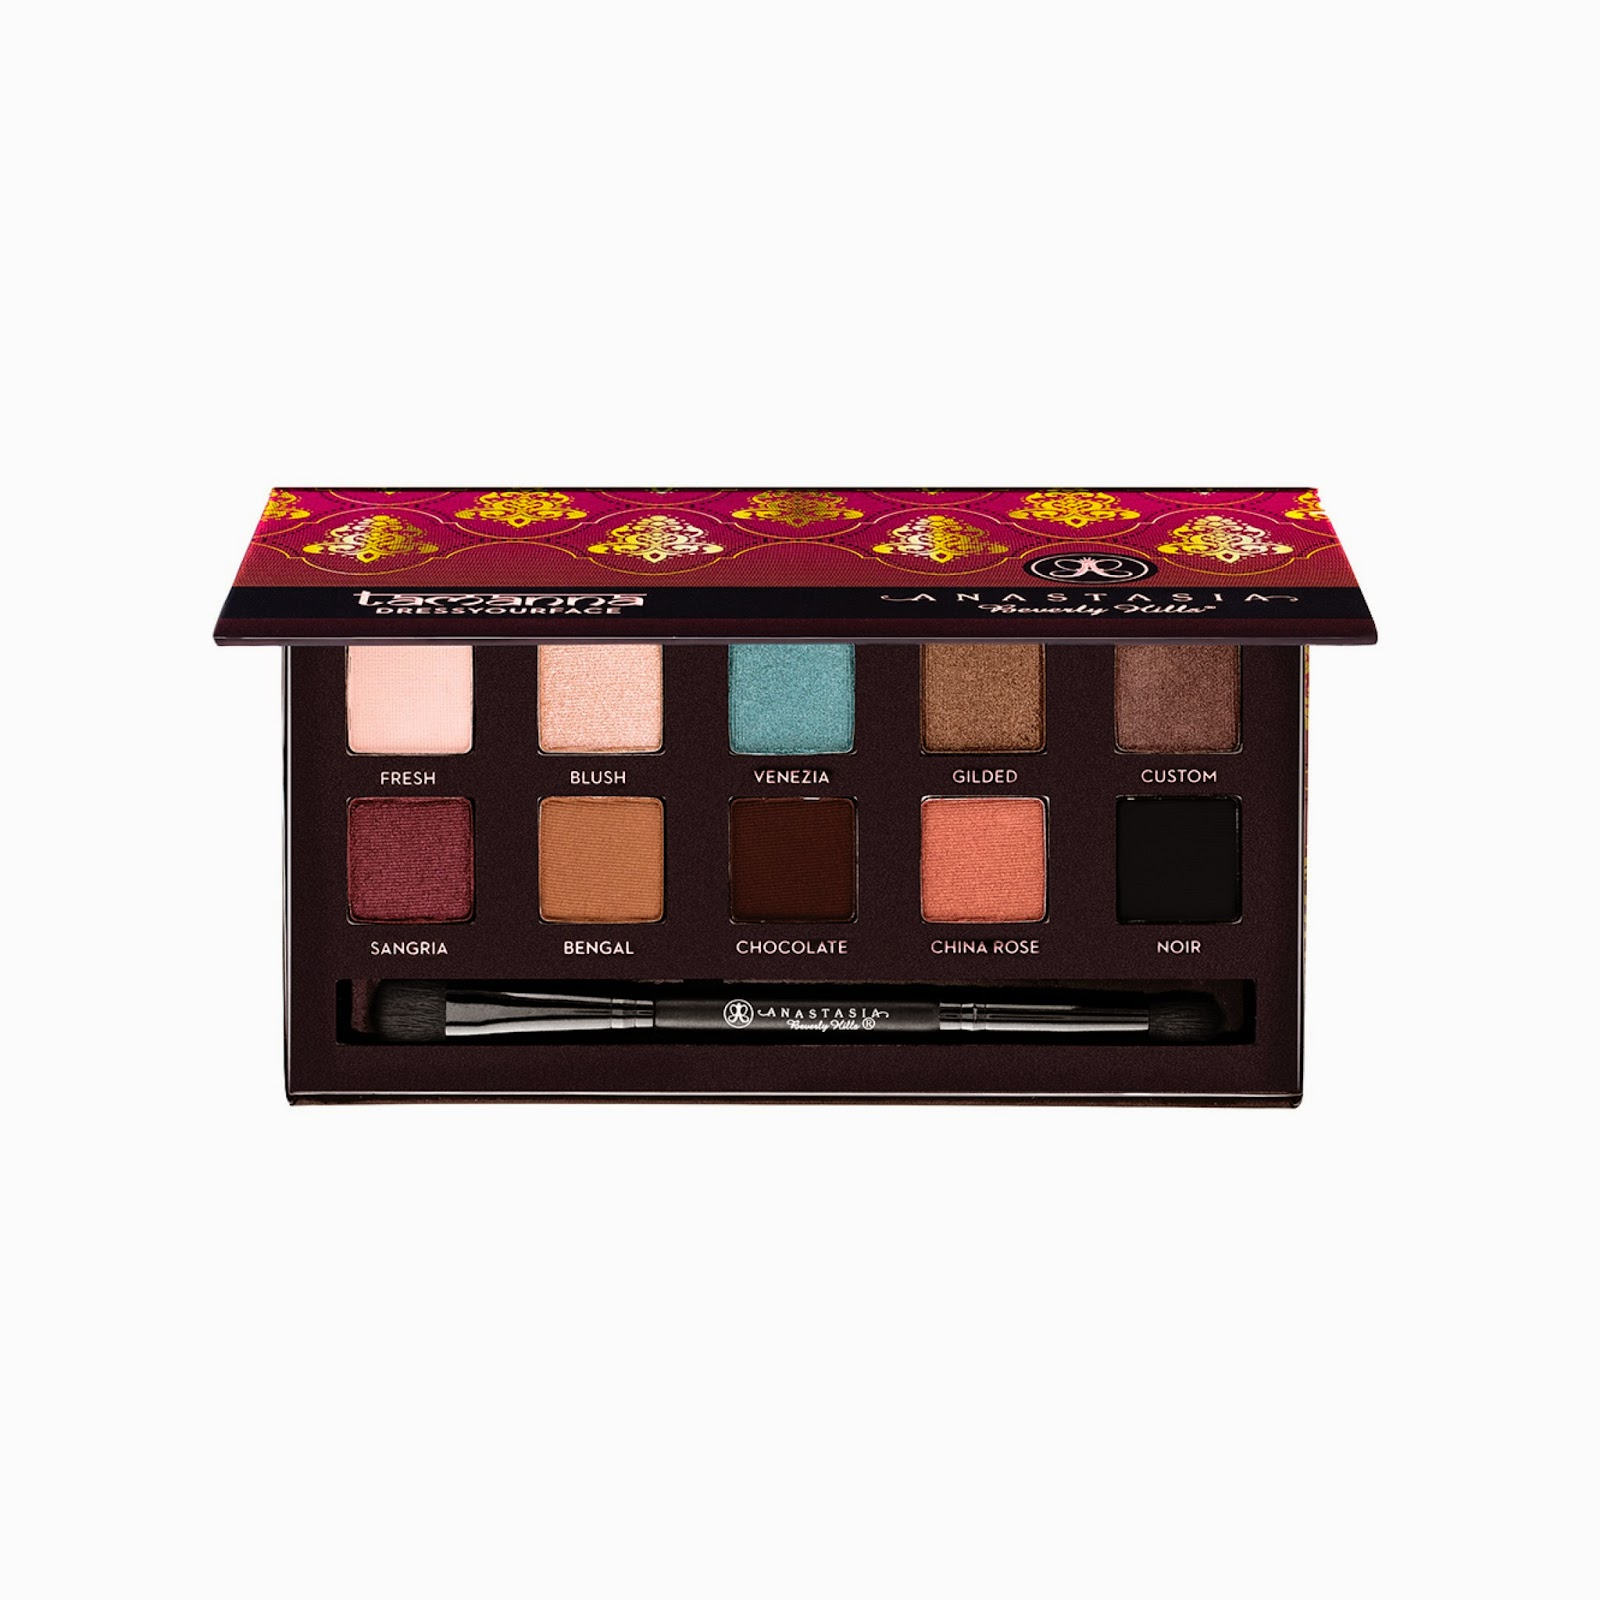 Anastasia Beverly Hills Tamanna Palette, Fall and Holiday 2014 Collection